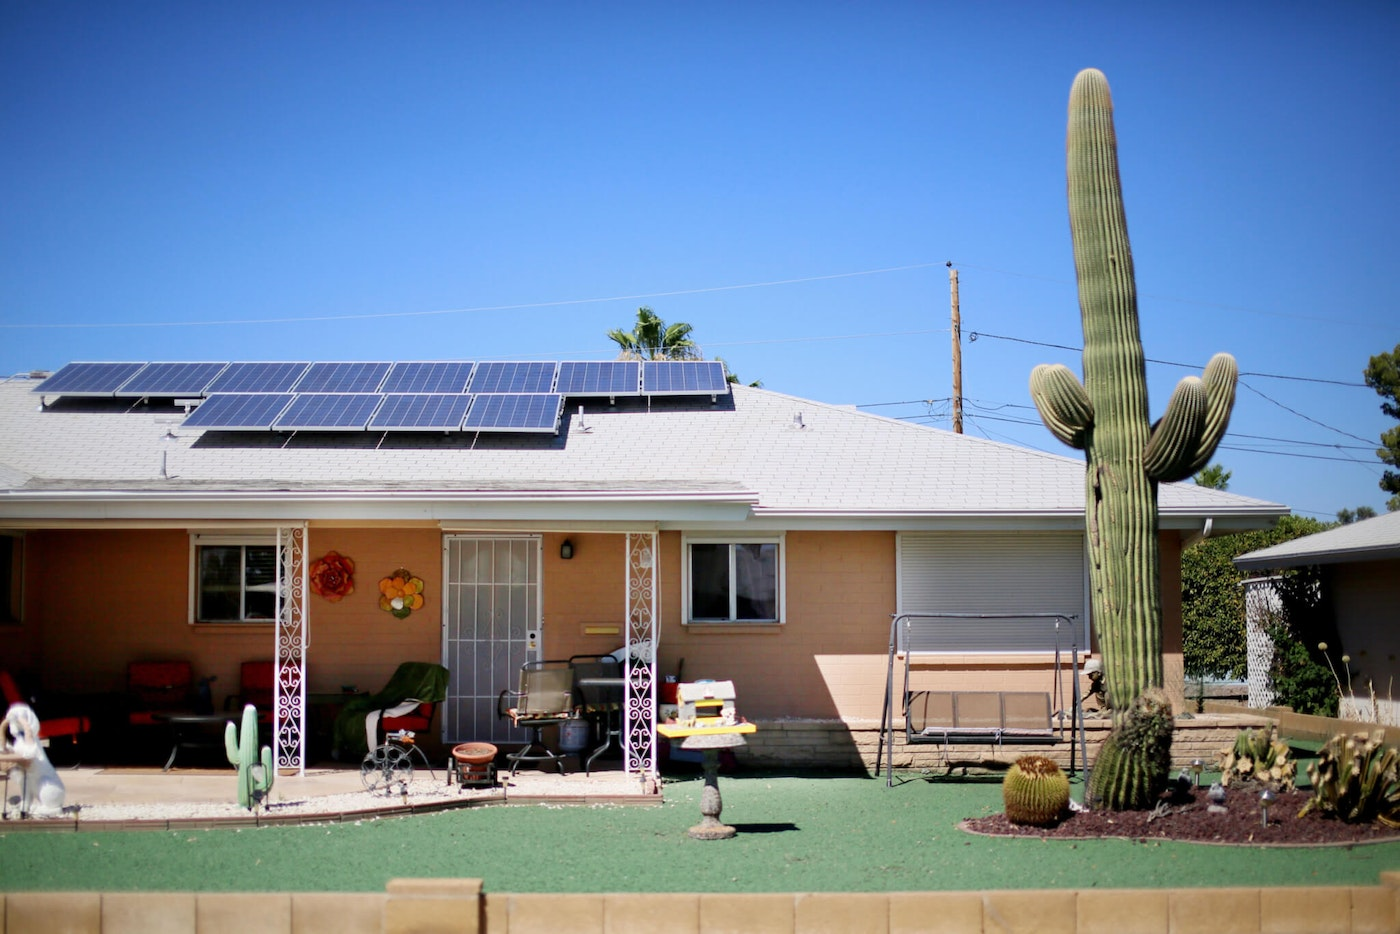 A home in the Lakeview Senior homes area, with solar panels onthe roof, in Sun City, Arizona on Thursday, June 20, 2013. As the solar power industry skirmishes with utilities over the growth of the home solar panel business, it is enlisting a new political ally: Tea Party activists and other conservative voters. Renewable energy firms have traditionally sought help from the political left by touting the environmental benefits of greener power. But as the industry grows outside of California in (Photo by Sandy Huffaker/Corbis via Getty Images)